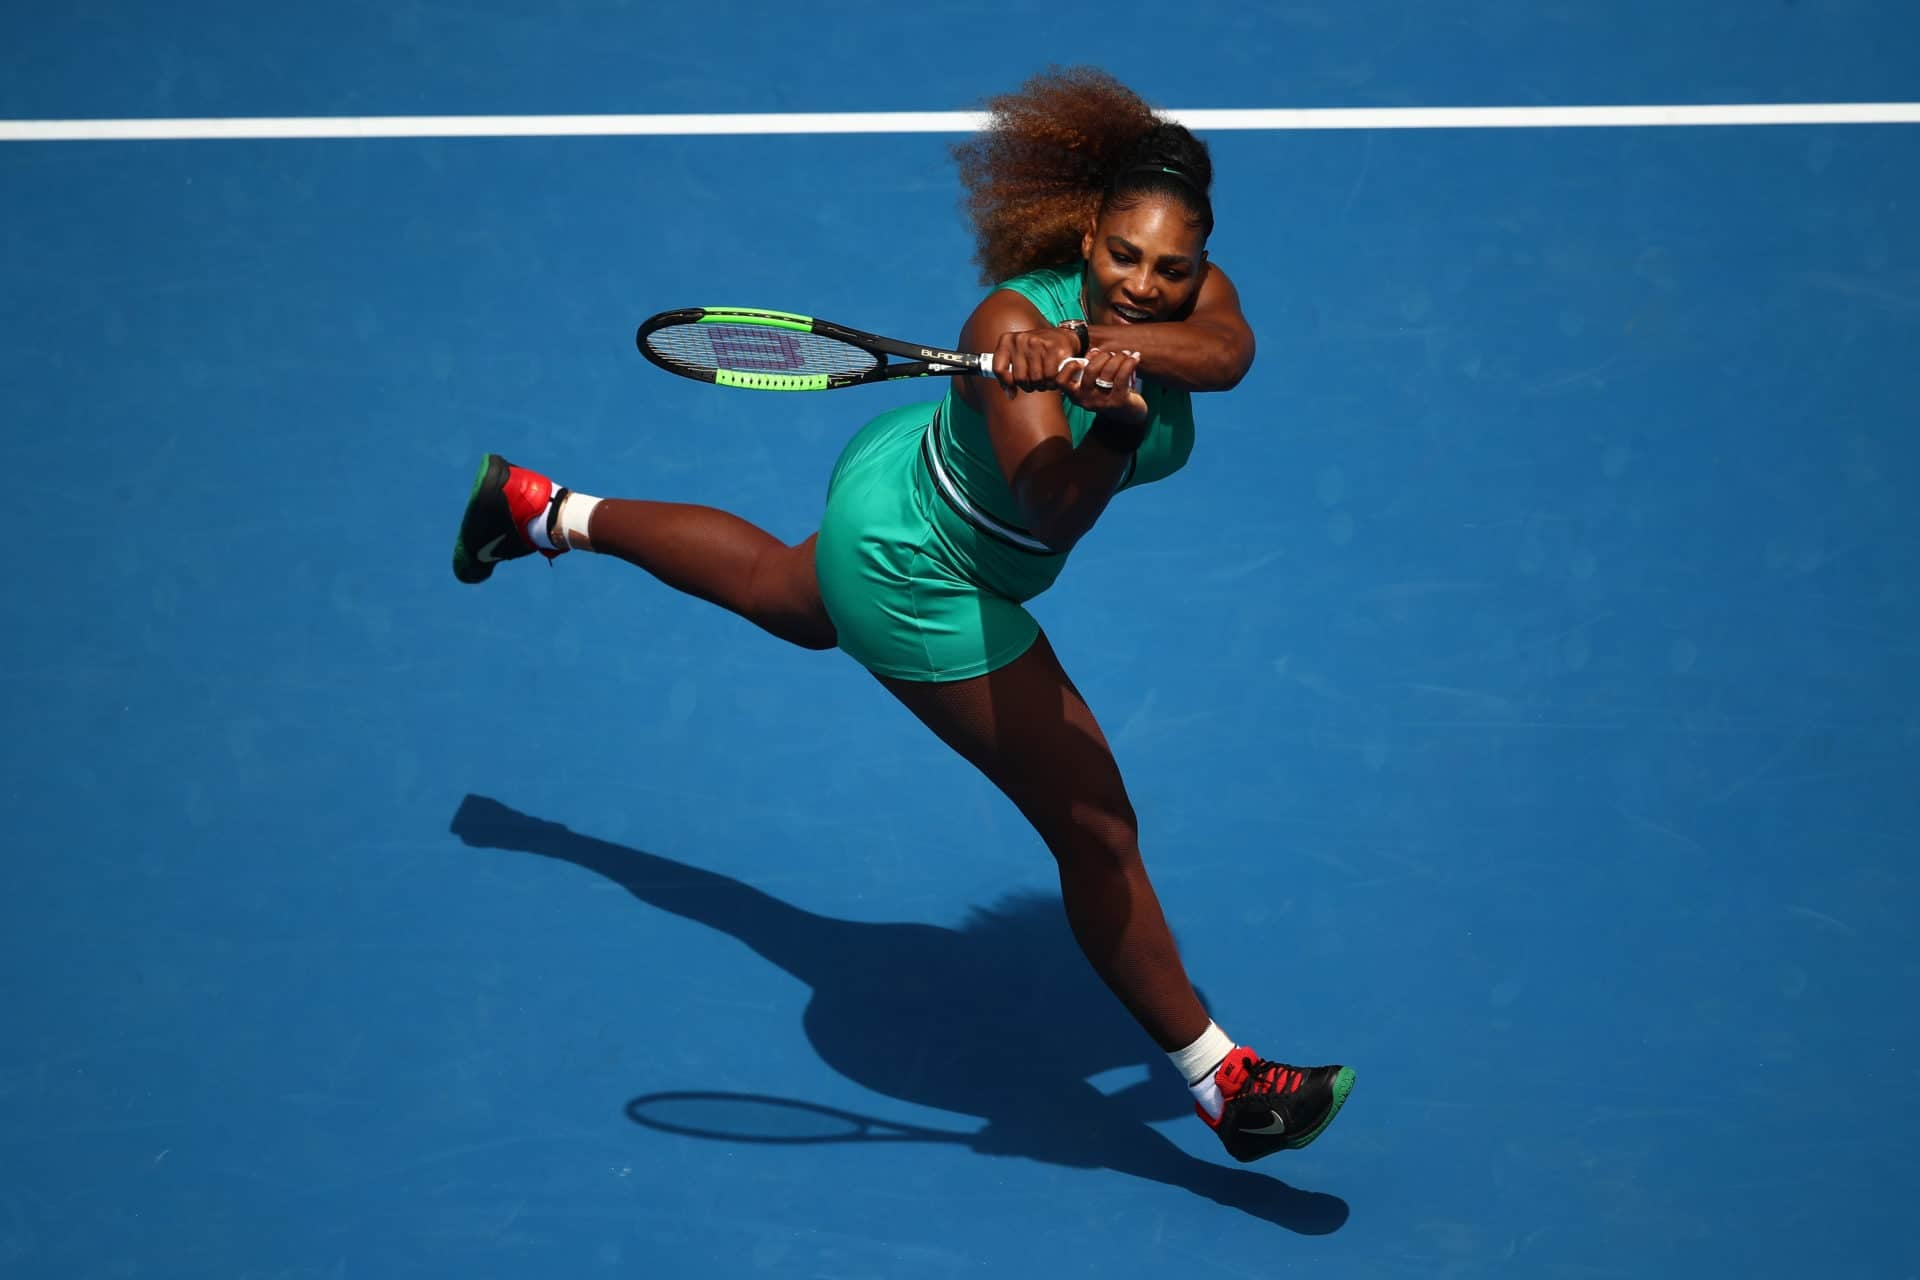 Serena Williams Consoles Opponent After Winning 1st Round At Australian Open